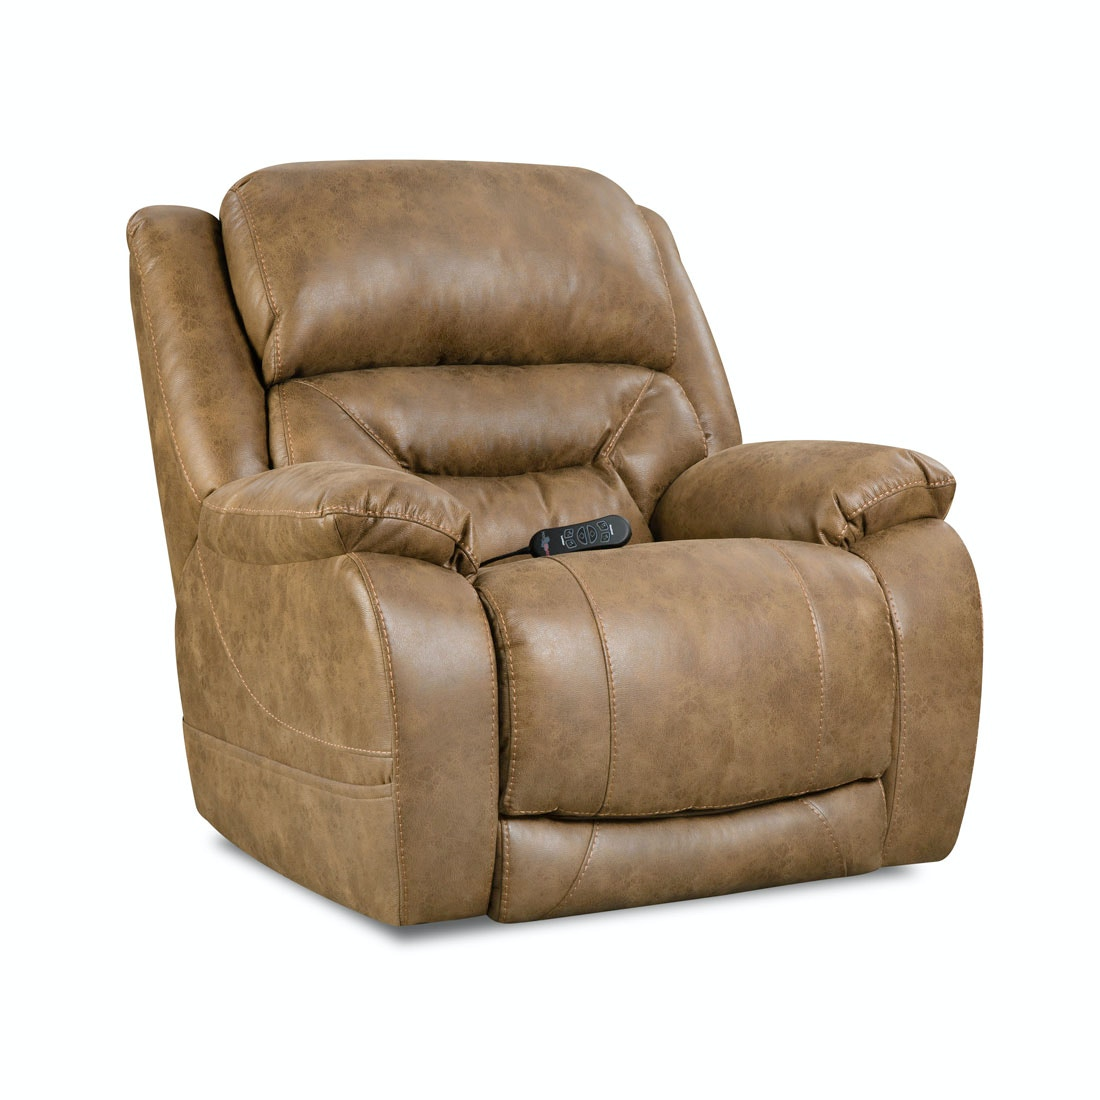 Home Stretch Living Room Starship Power Recliner Furniture